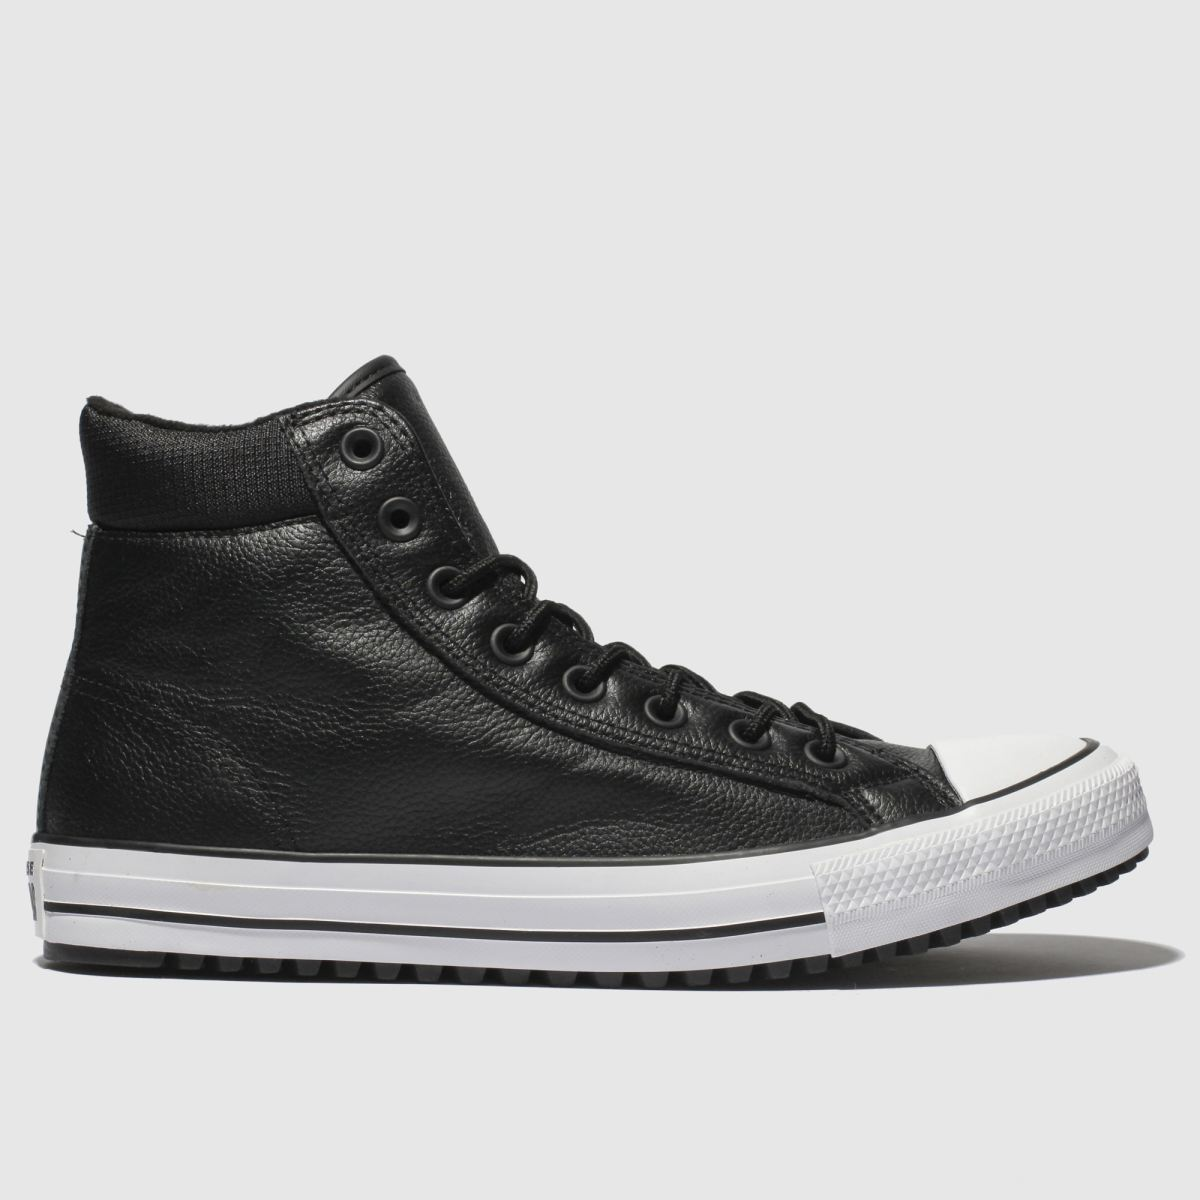 Converse Chuck Taylor PC Leather High